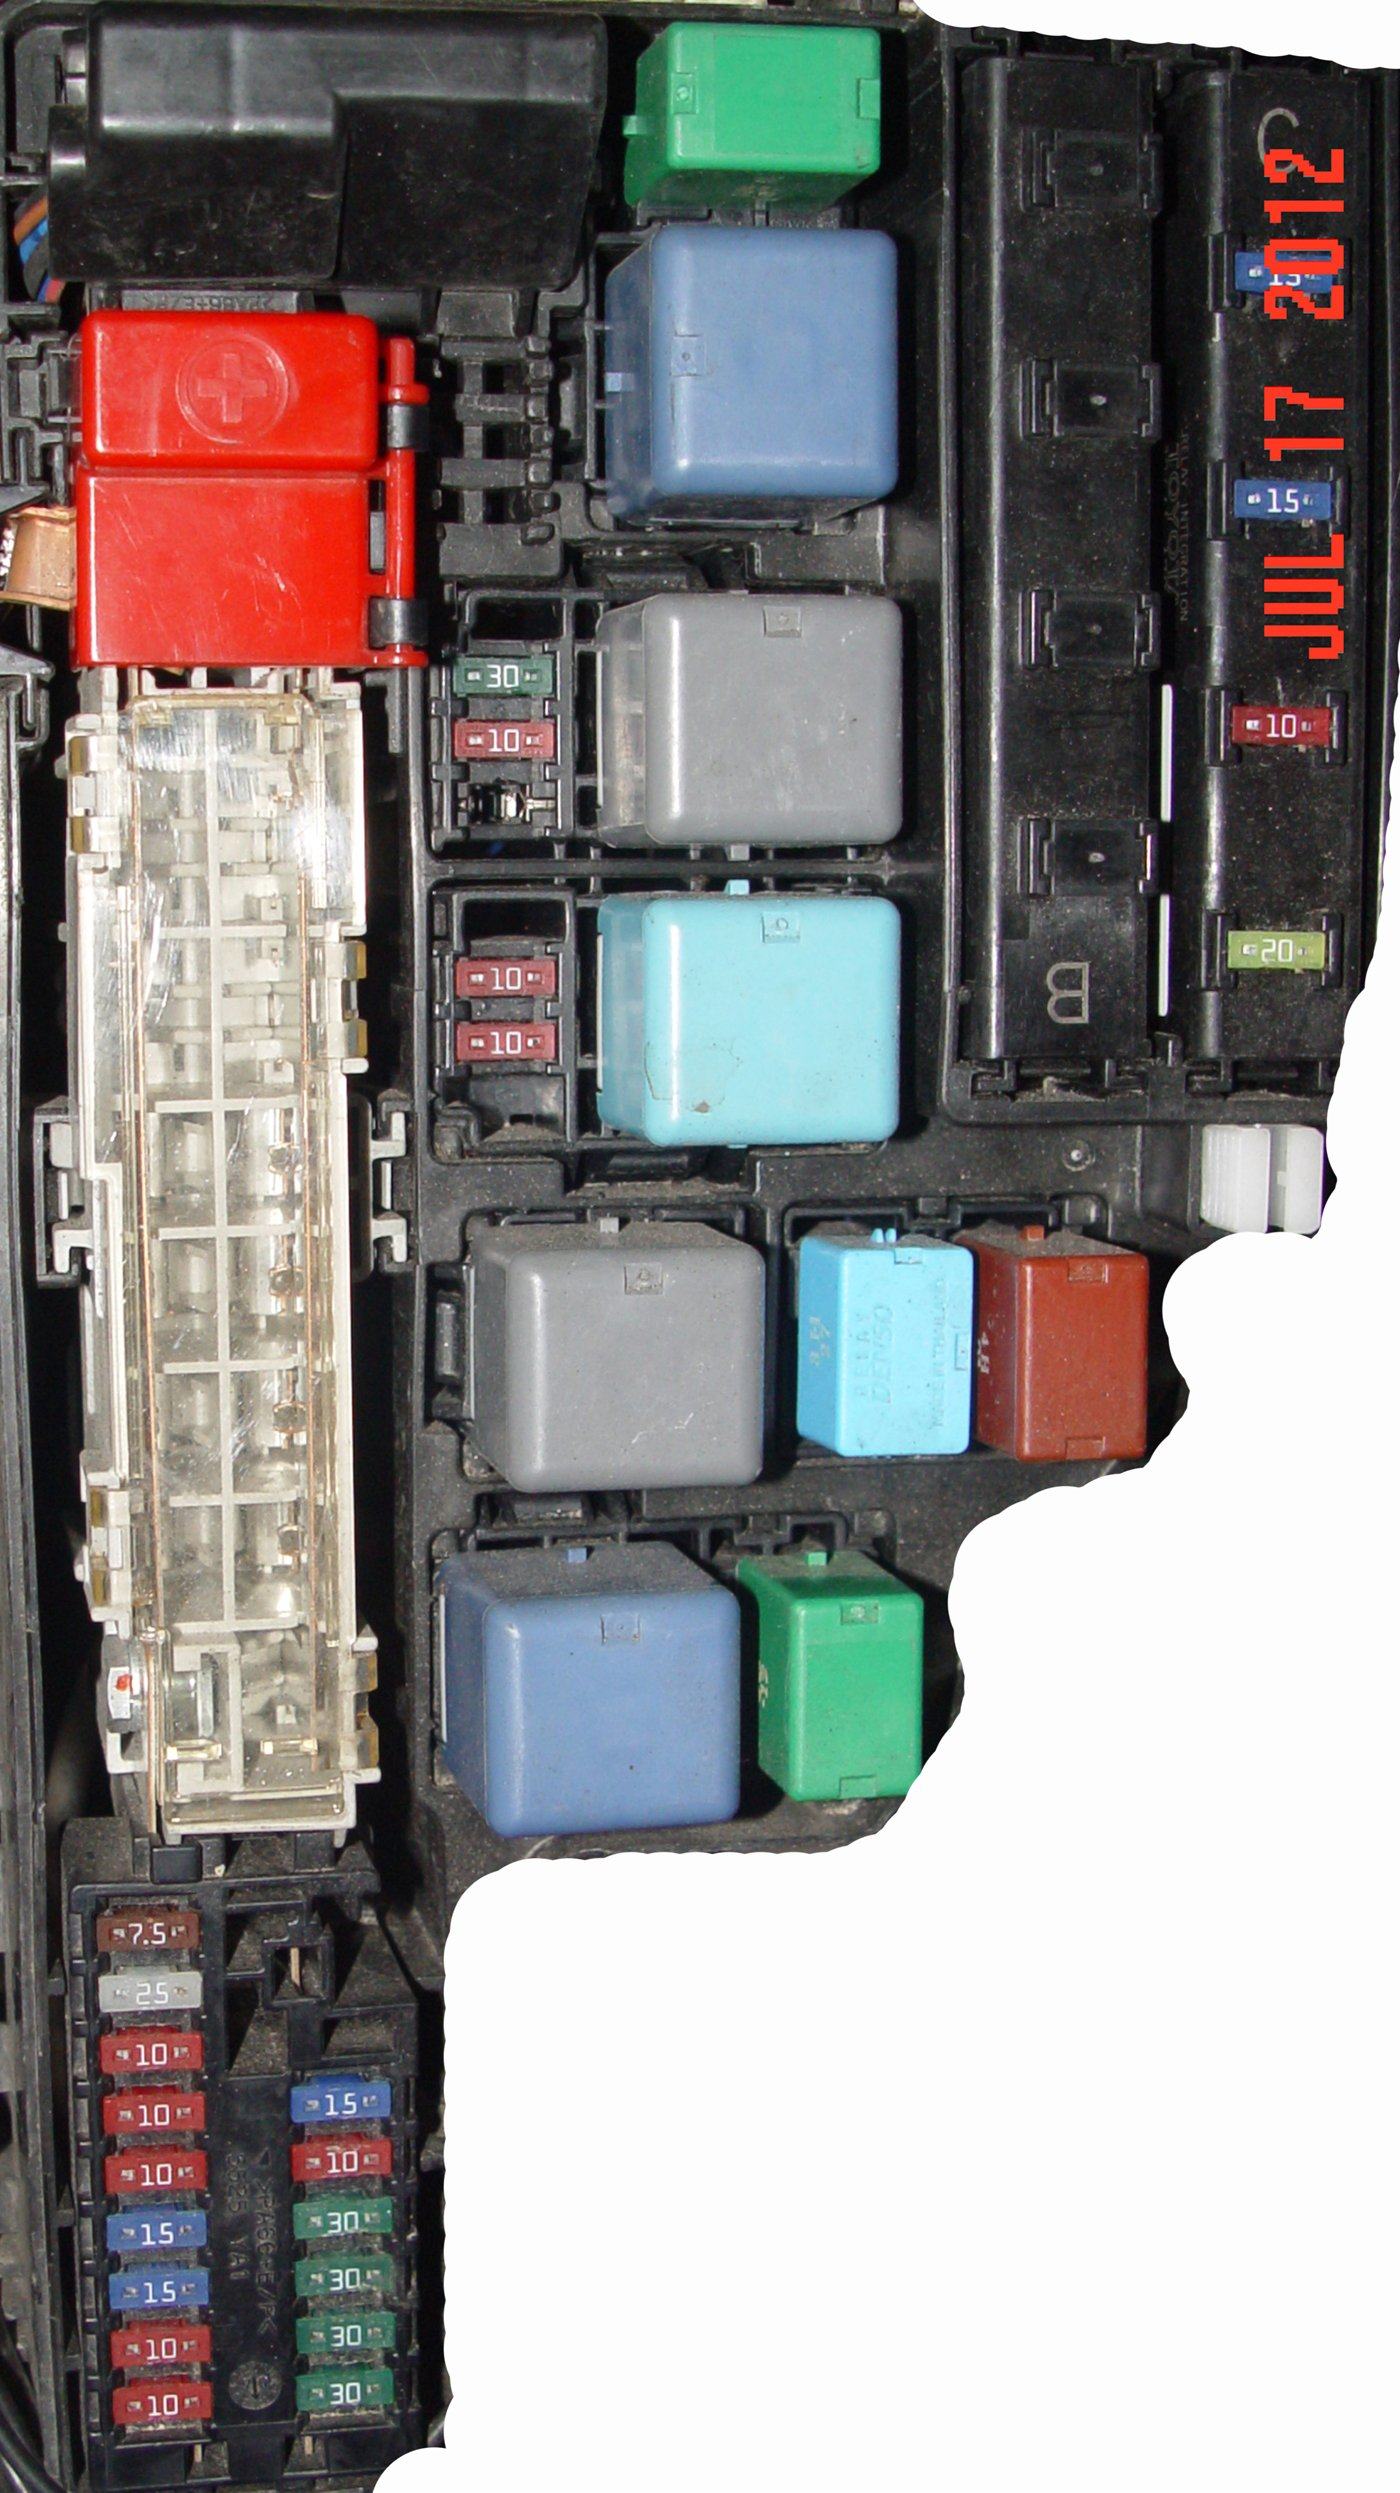 2006 Toyota Prius Fuse Box Wiring Diagram Libraries 2010 Highlander Panel 2007 Todays2008 Simple Schema